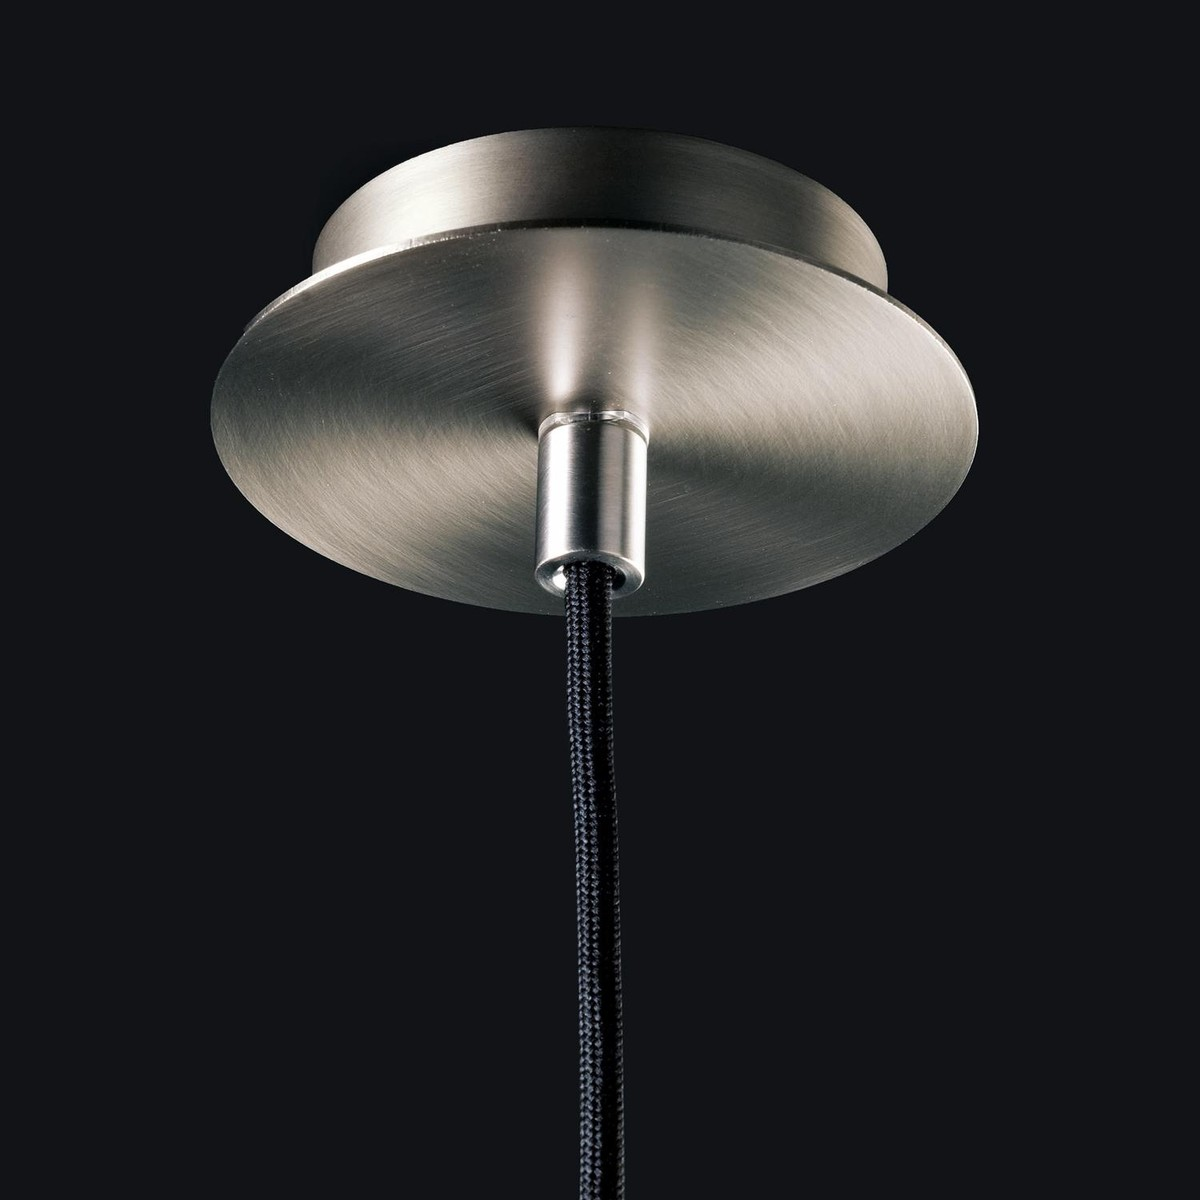 Pipe 3 led suspension lamp decor walther ambientedirect com - Decor Walther Pipe 1 Suspension Led